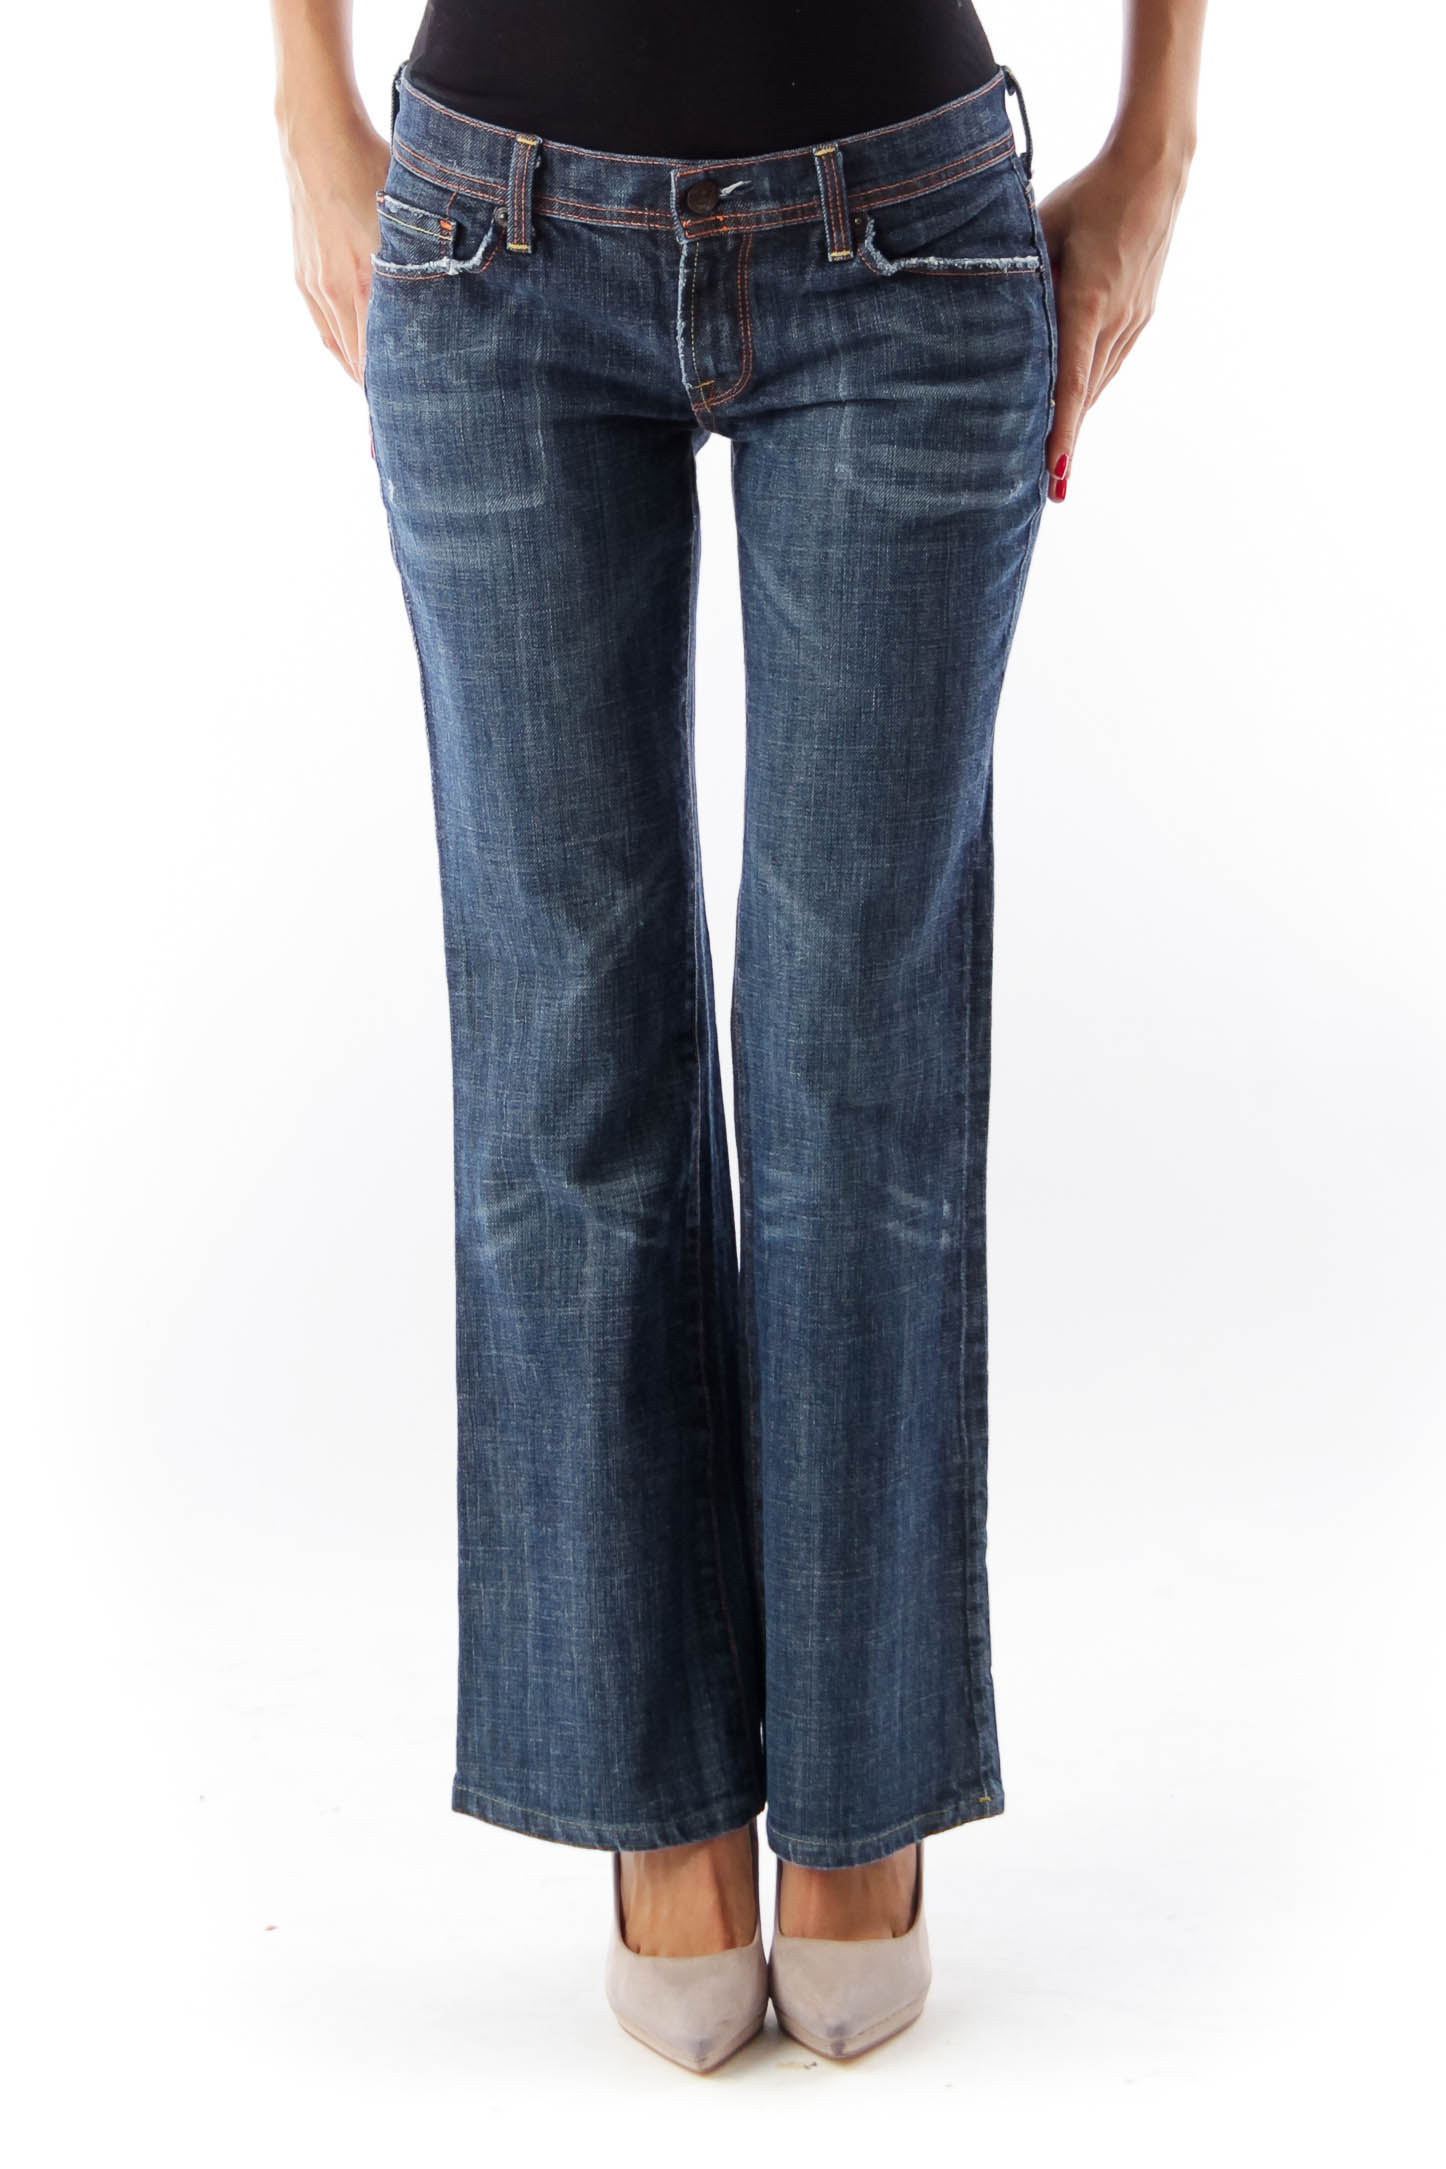 Blue Medium Wash Wide Denim